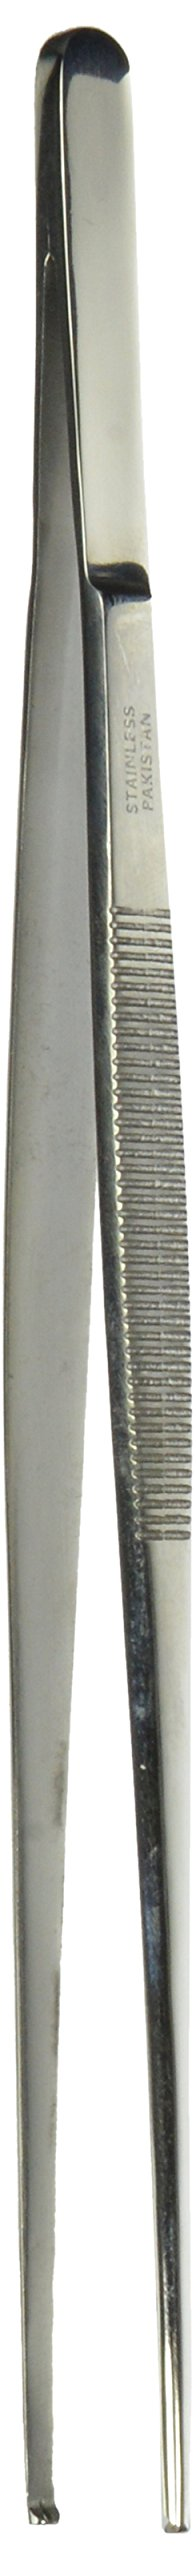 Tamsco Tissue Thumb Forceps 1 by 2 Teeth 10-Inch Stainless Steel Groove Handles 1 by 2 Teeth Medium Point by Tamsco